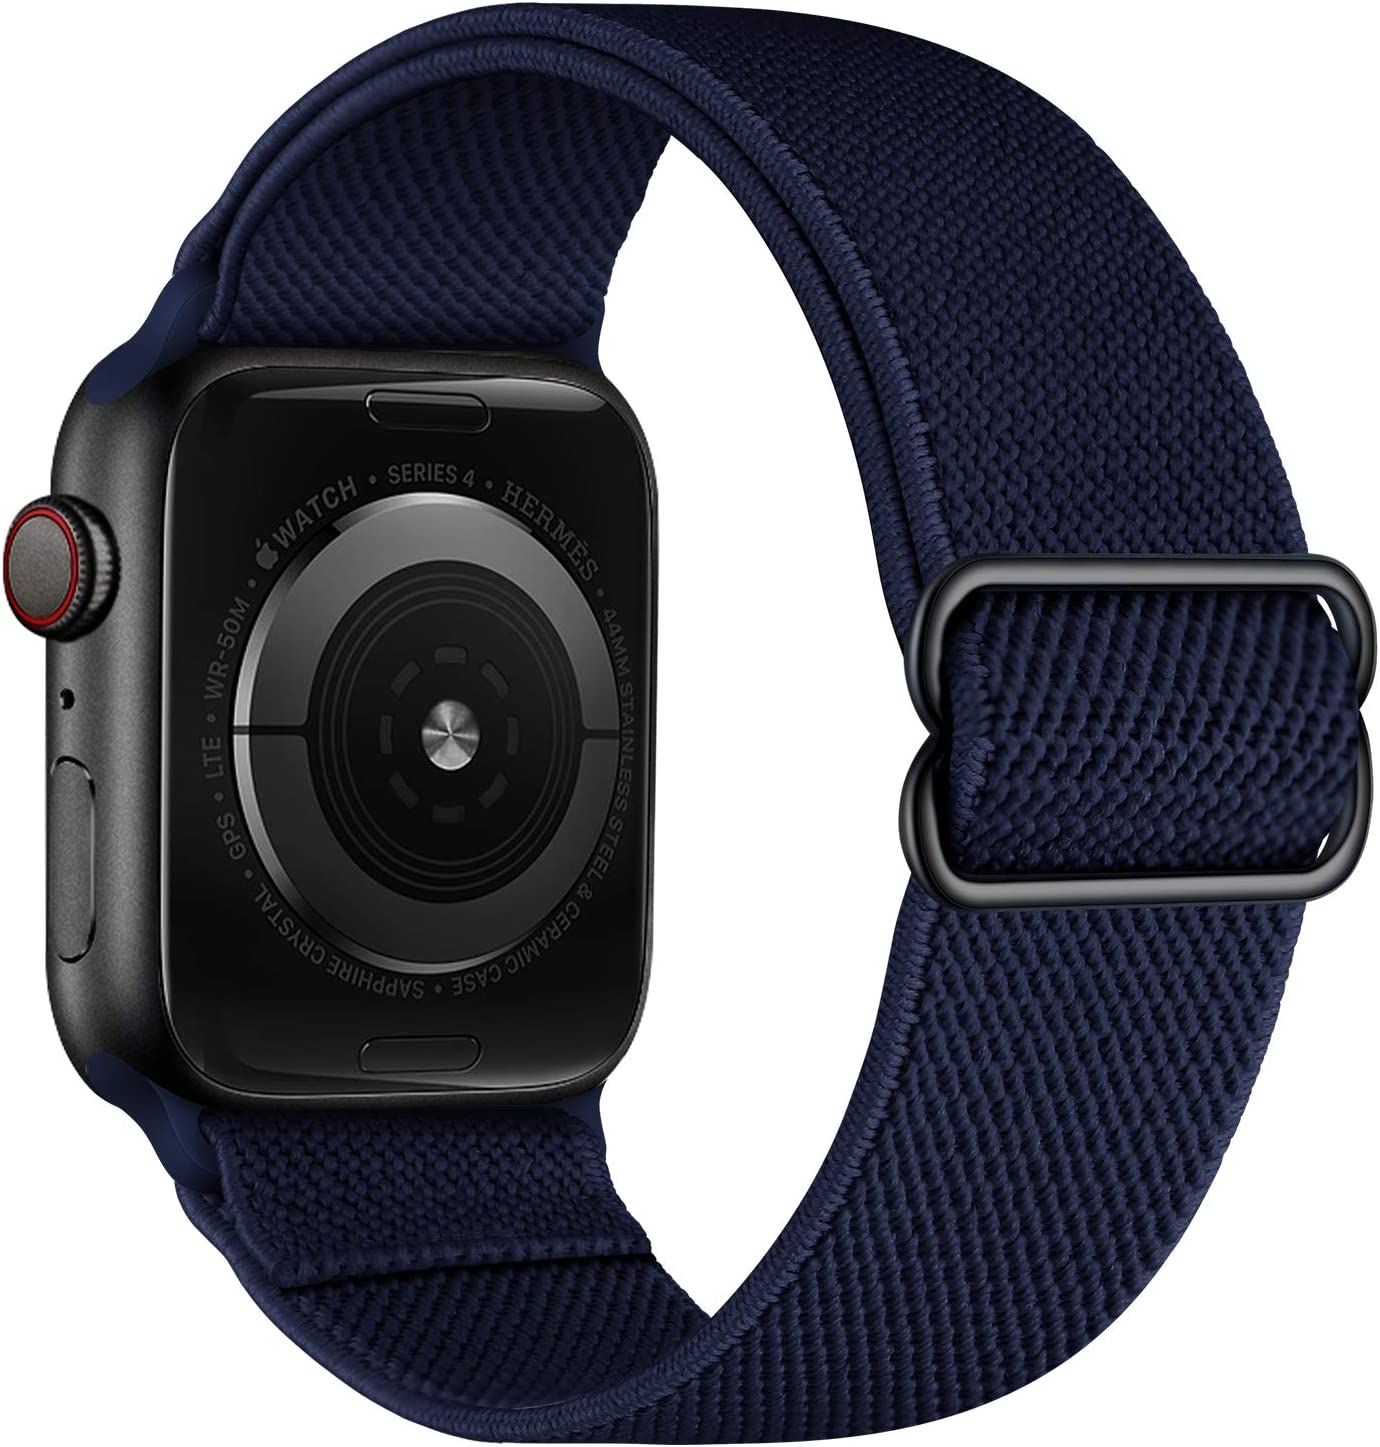 OXWALLEN Stretchy Solo Loop Compatible with Elastic Apple Watch Bands 42mm 44mm, Adjustable Braided Sport Nylon Women Men Bracelet Strap for iWatch SE Series 6/5/4/3 - Midnight Blue